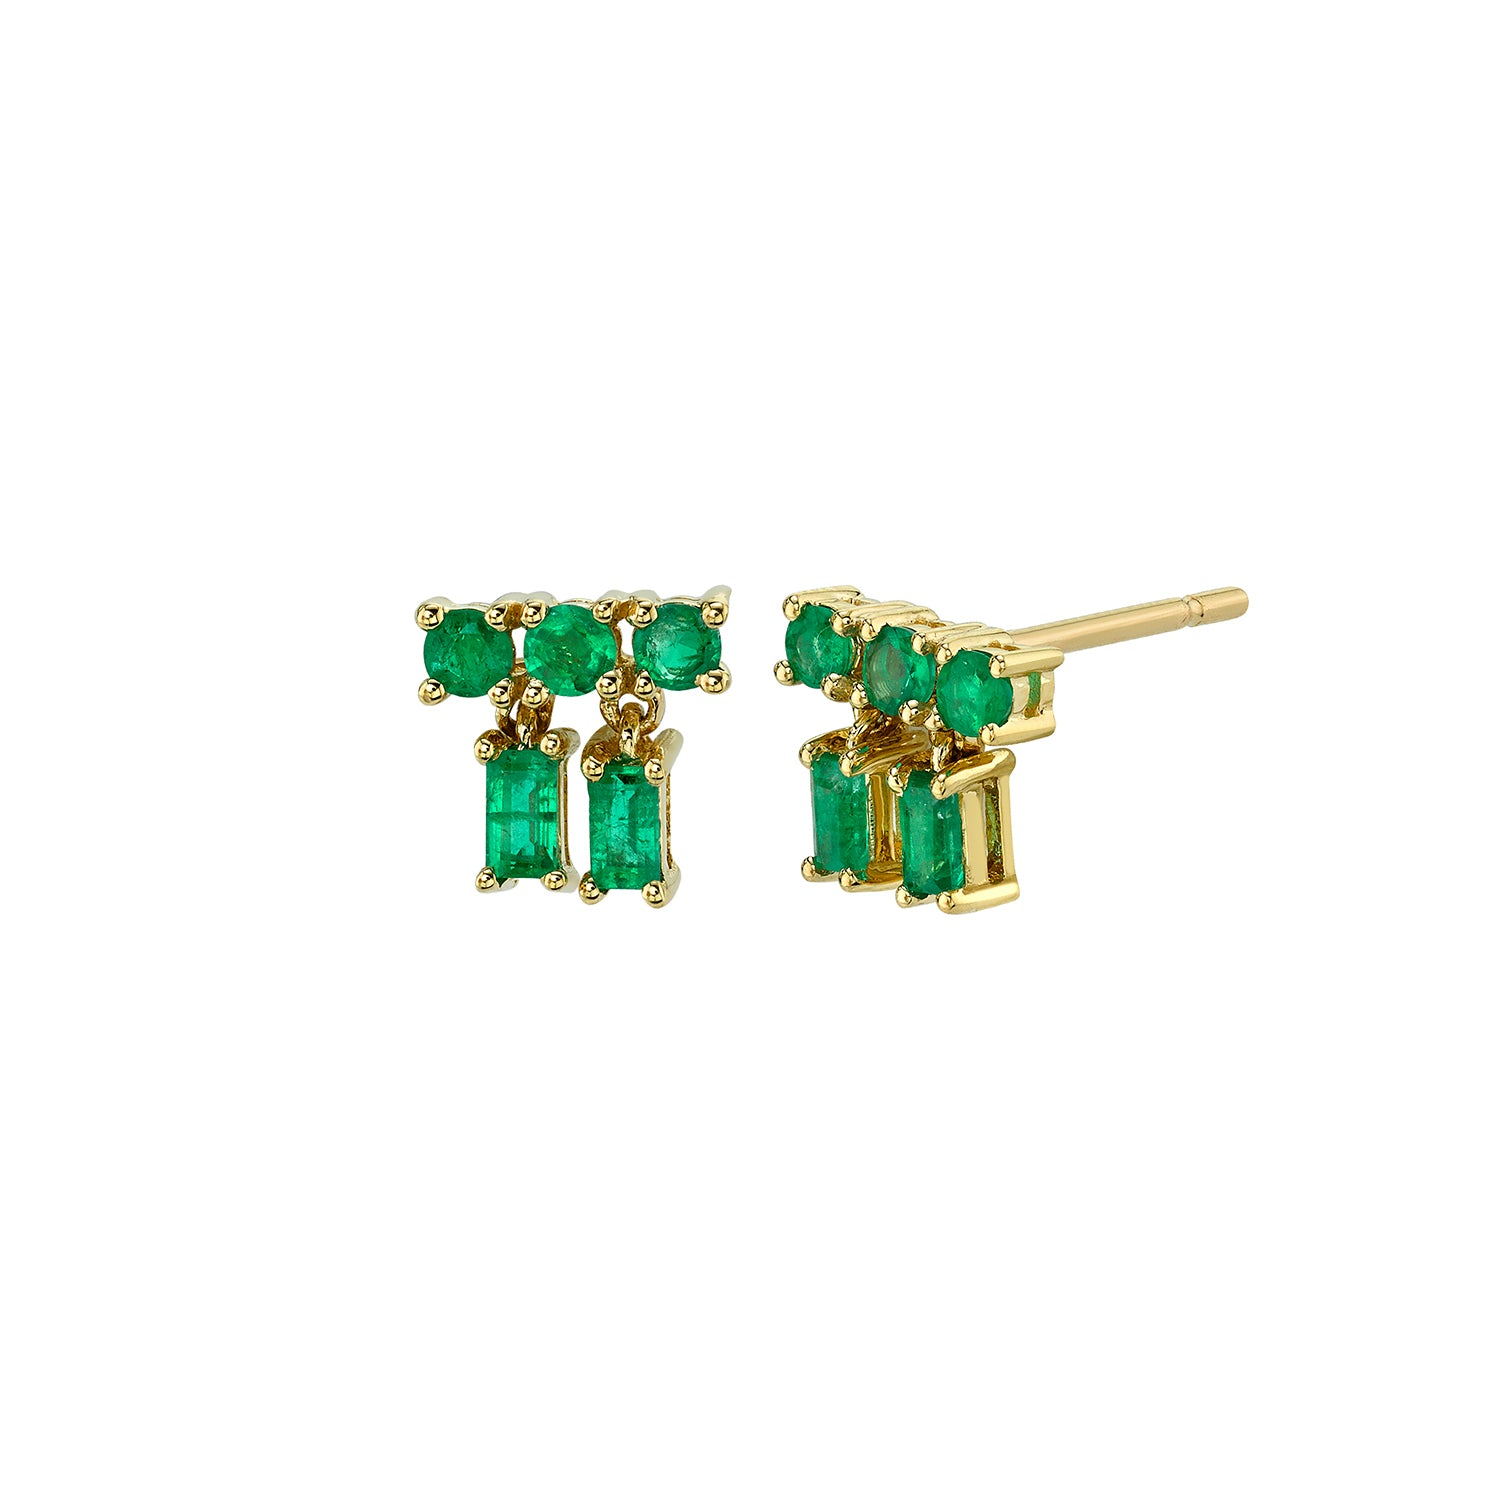 Mixed Cut Emerald Drop Studs by Borgioni for Broken English Jewelry